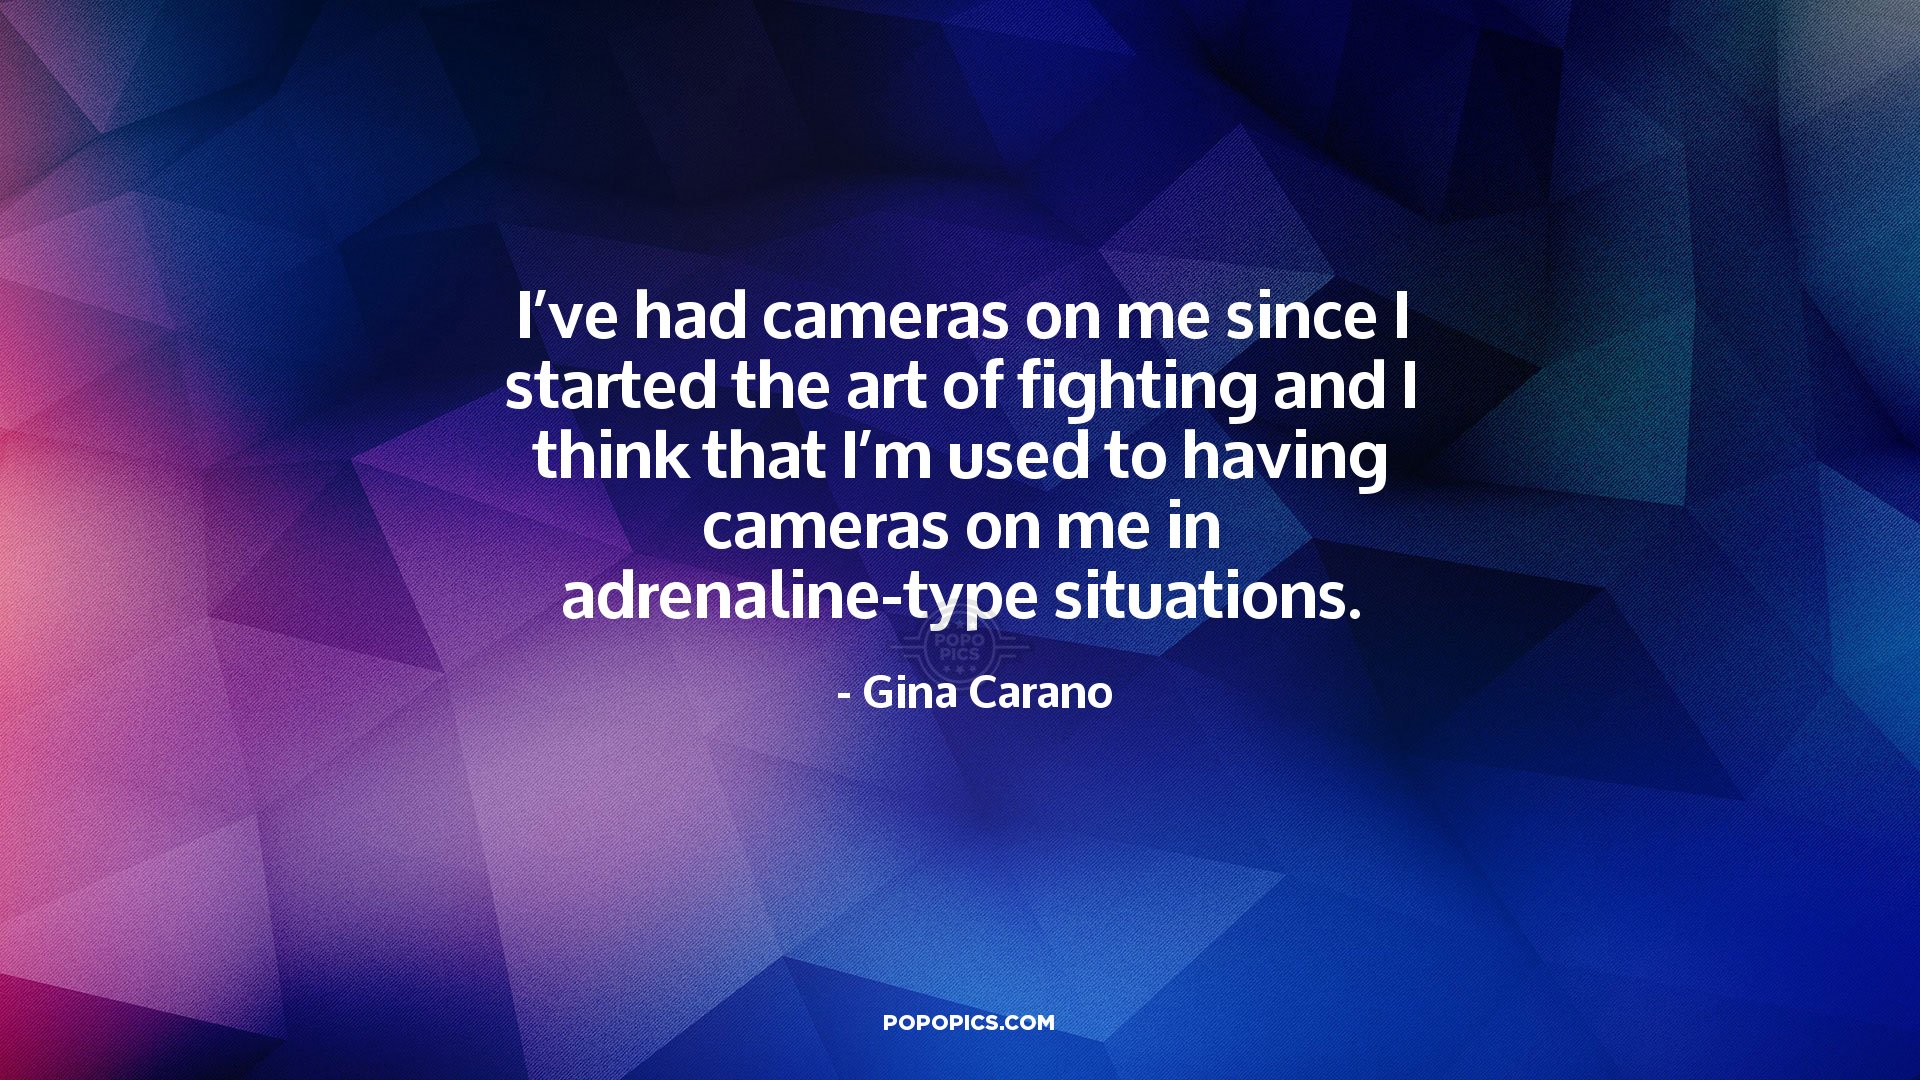 I Ve Had Cameras On Me Since I Started The Art Of Quotes By Gina Carano Popopics Com